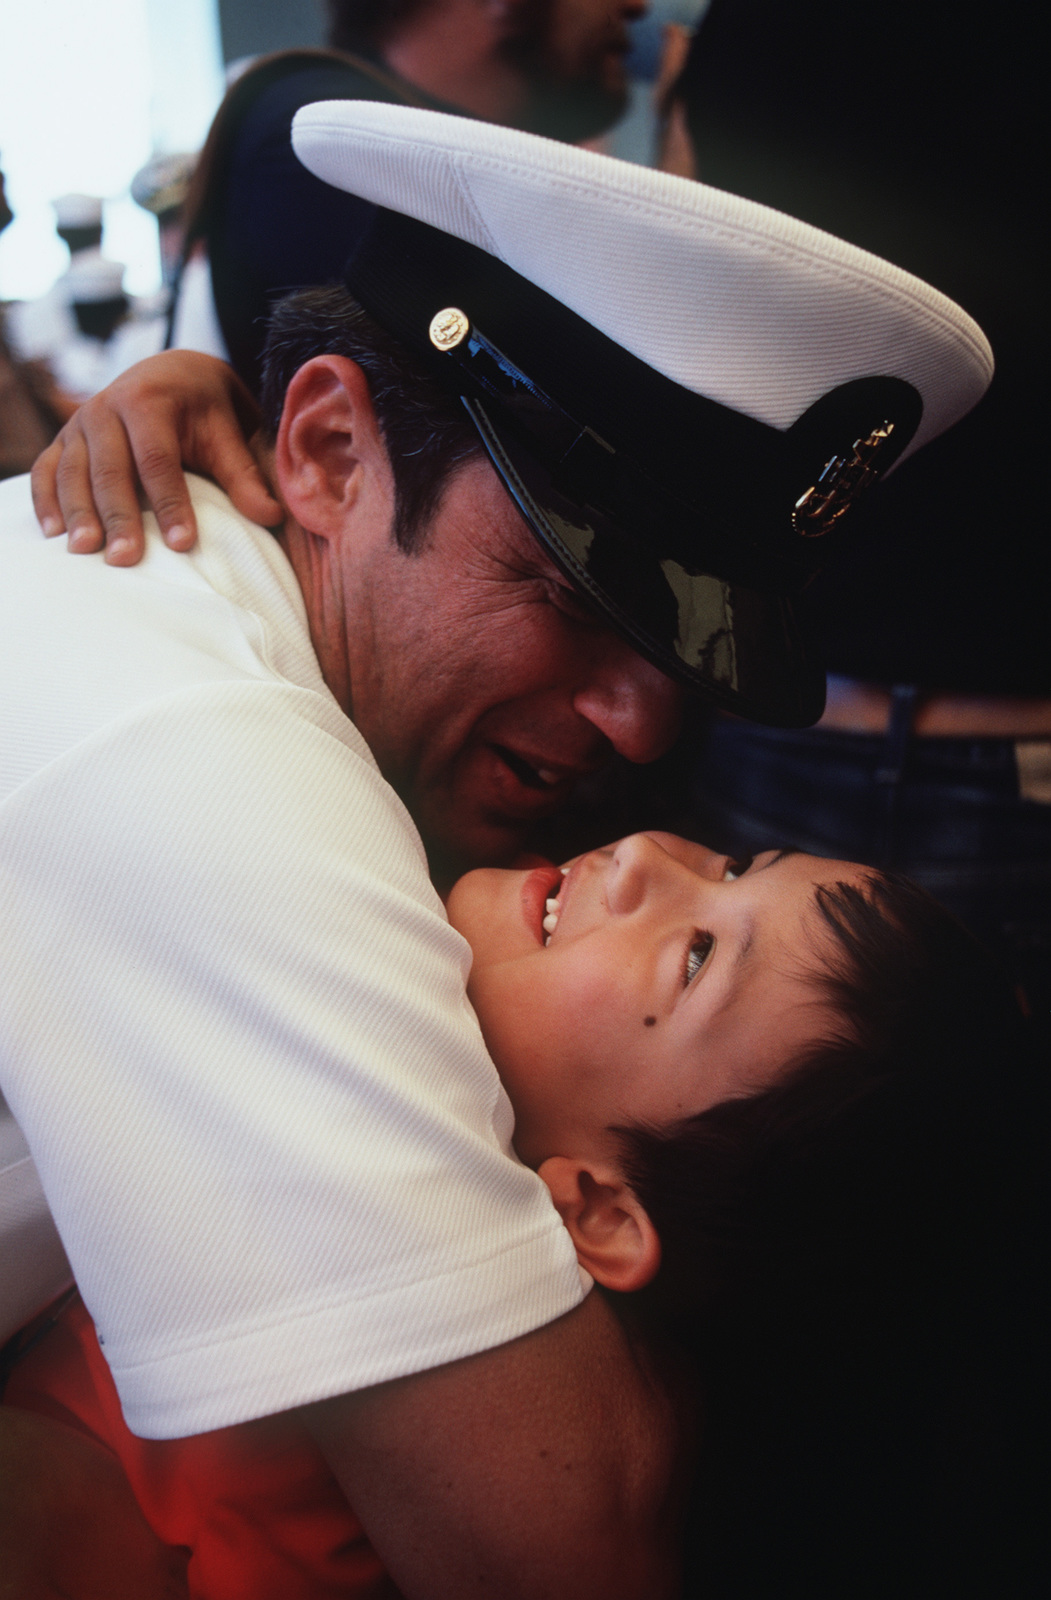 CHIEF Aviation Structural Mechanic S (Structures) (AMSC) Ricardo Garza hugs his son upon returning to home port after 11 months at sea aboard the battleship USS NEW JERSEY (BB 62)